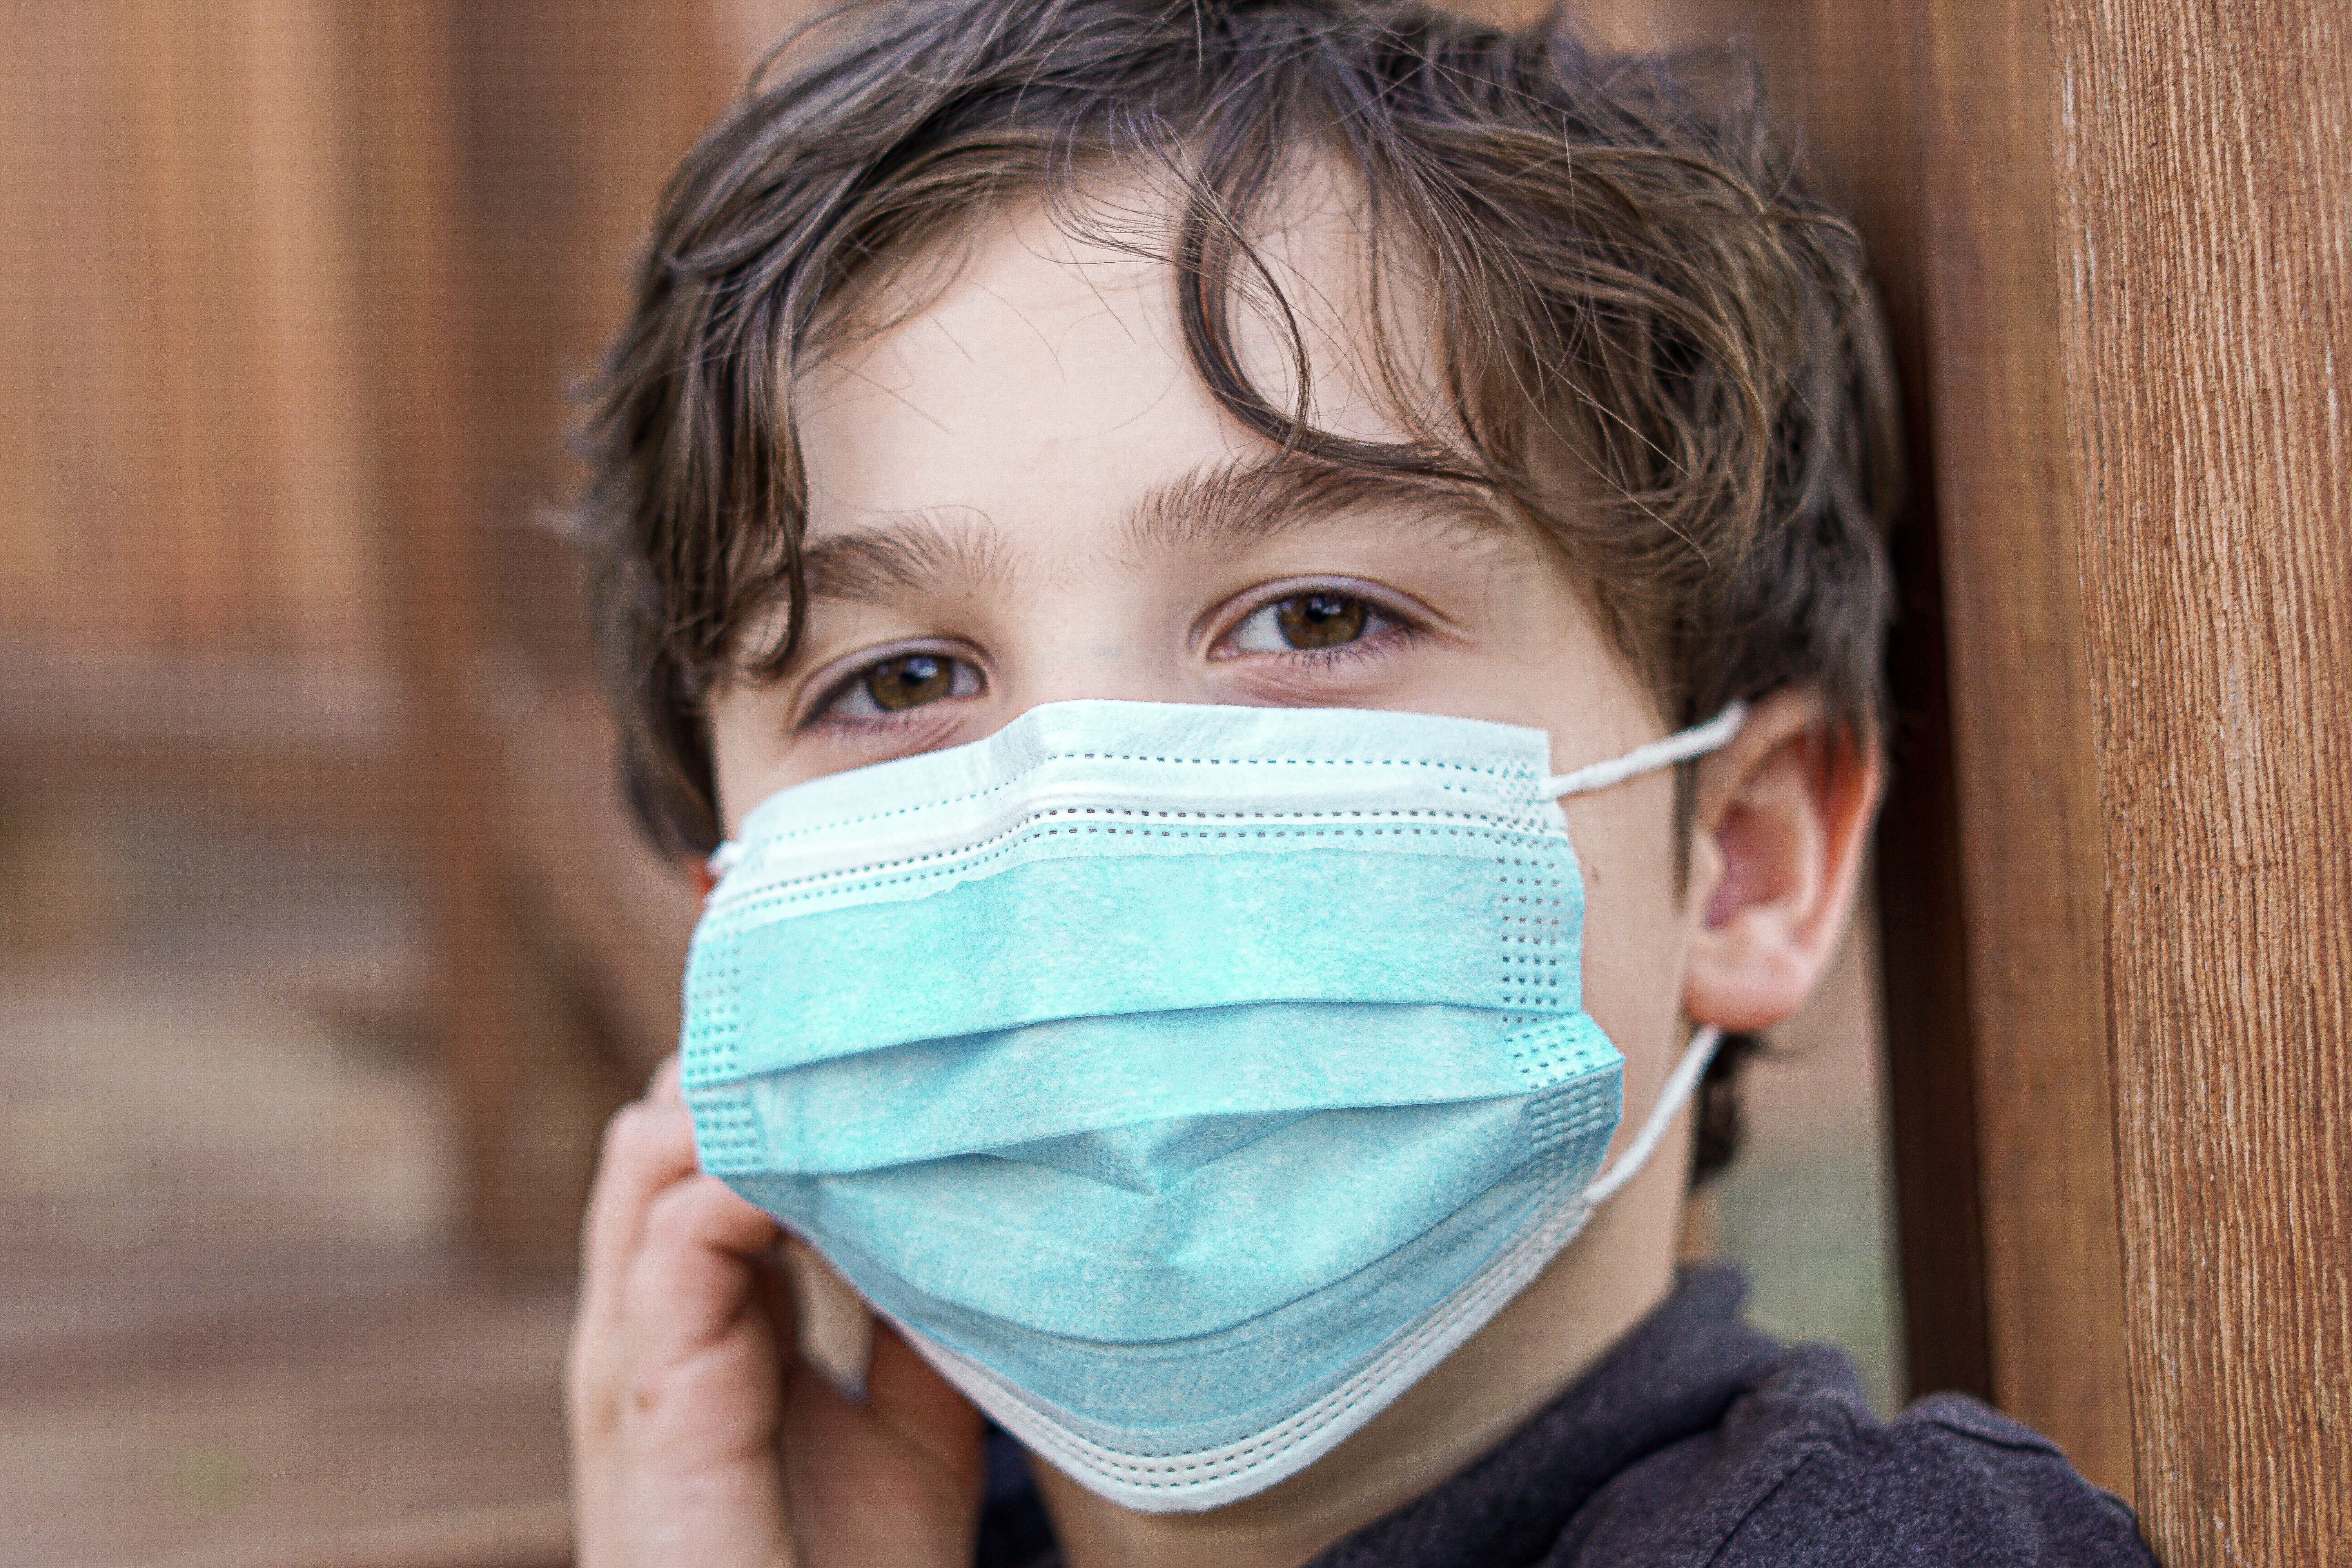 A kid with mask